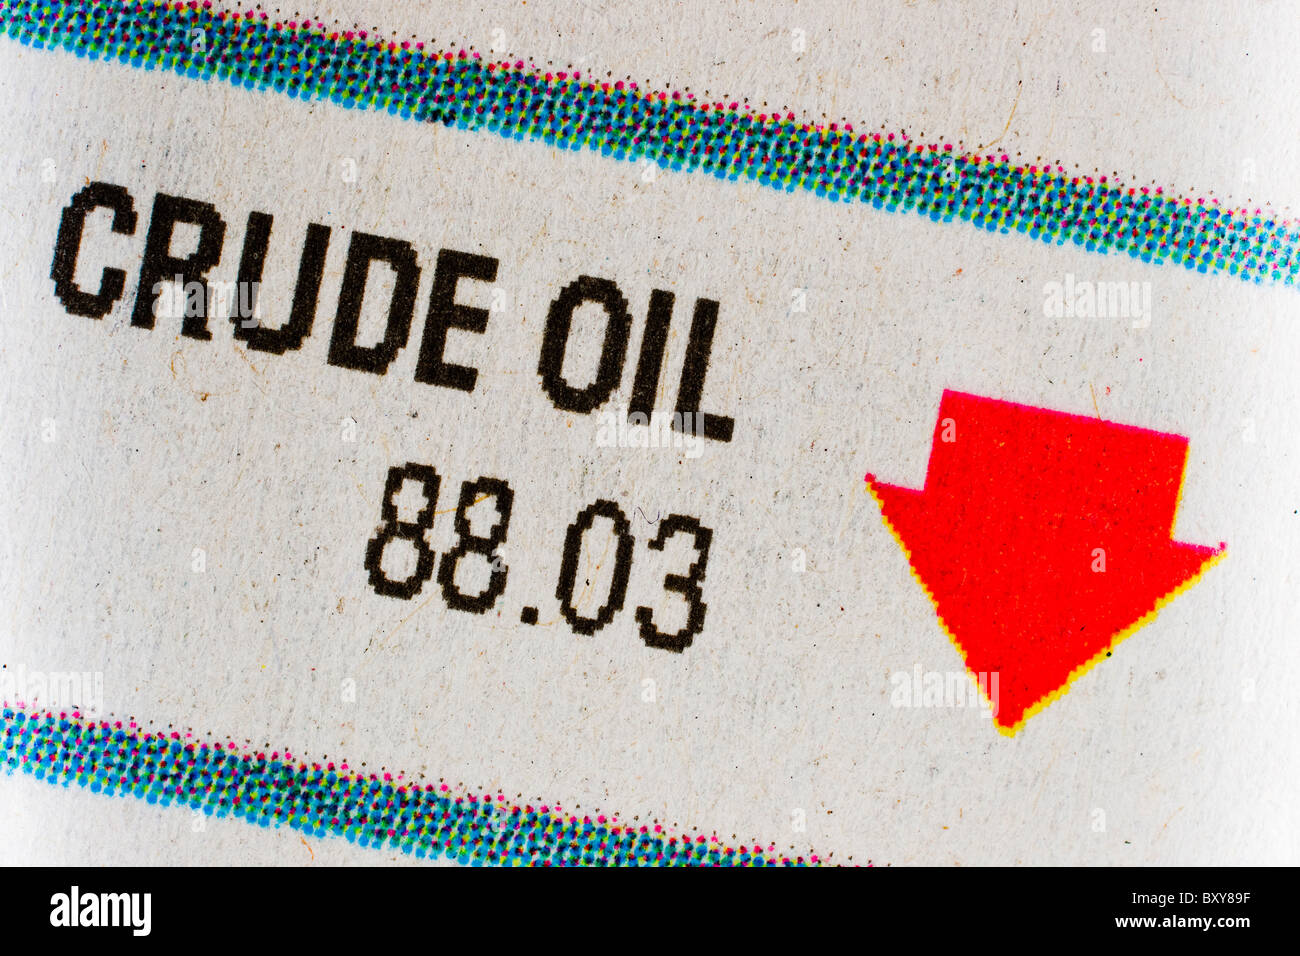 January 2011 news paper shows crude oil stock down. - Stock Image